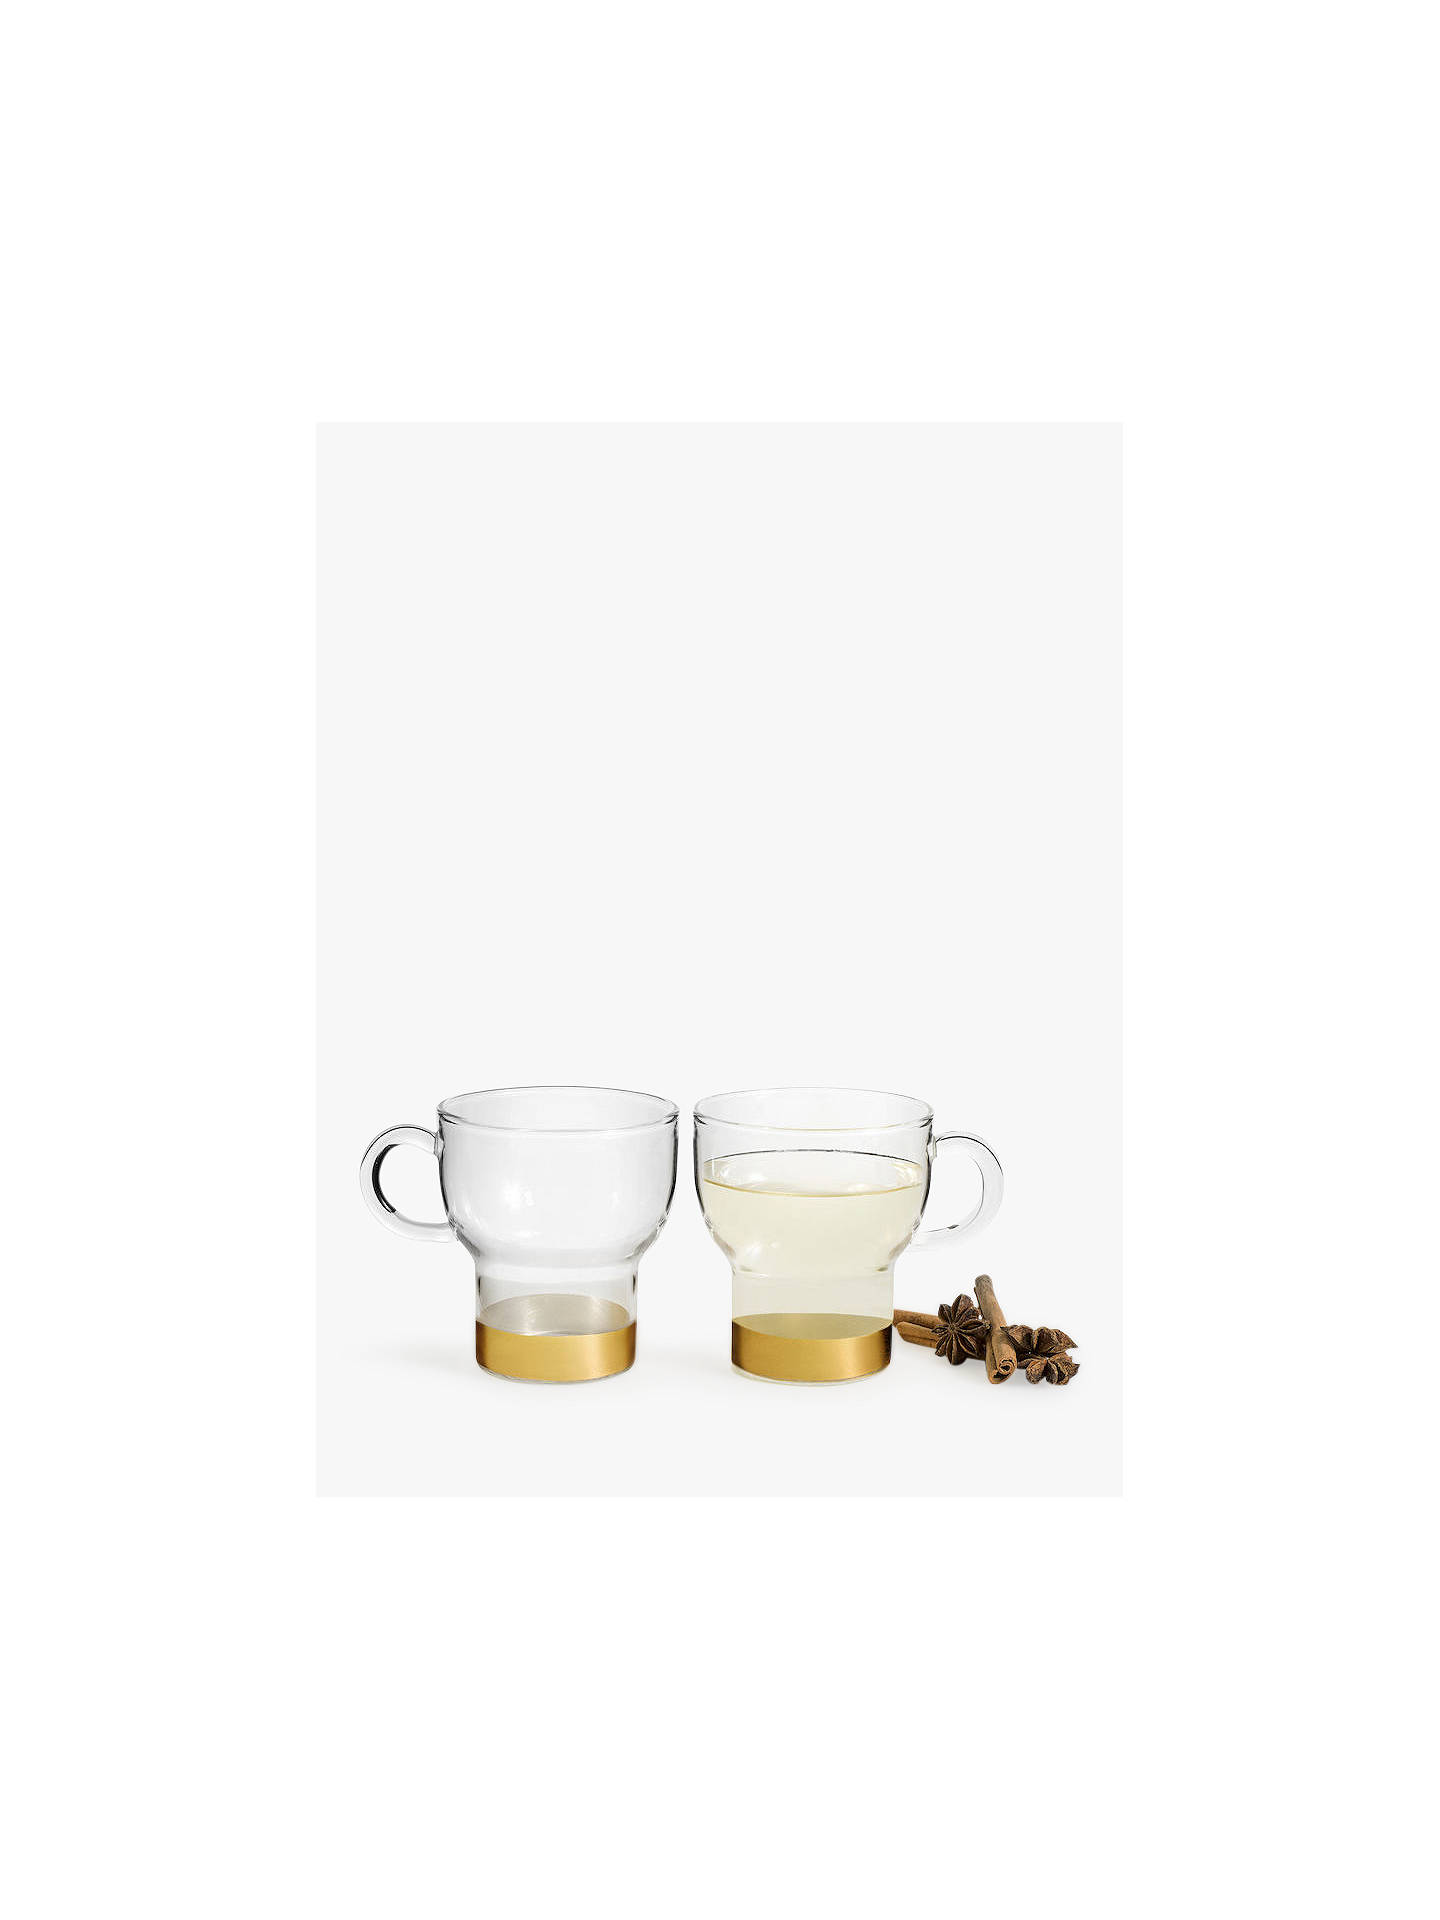 BuySagaform Mulled Wine Glass Mugs, Set of 2, 250ml, Clear/Gold Online at johnlewis.com